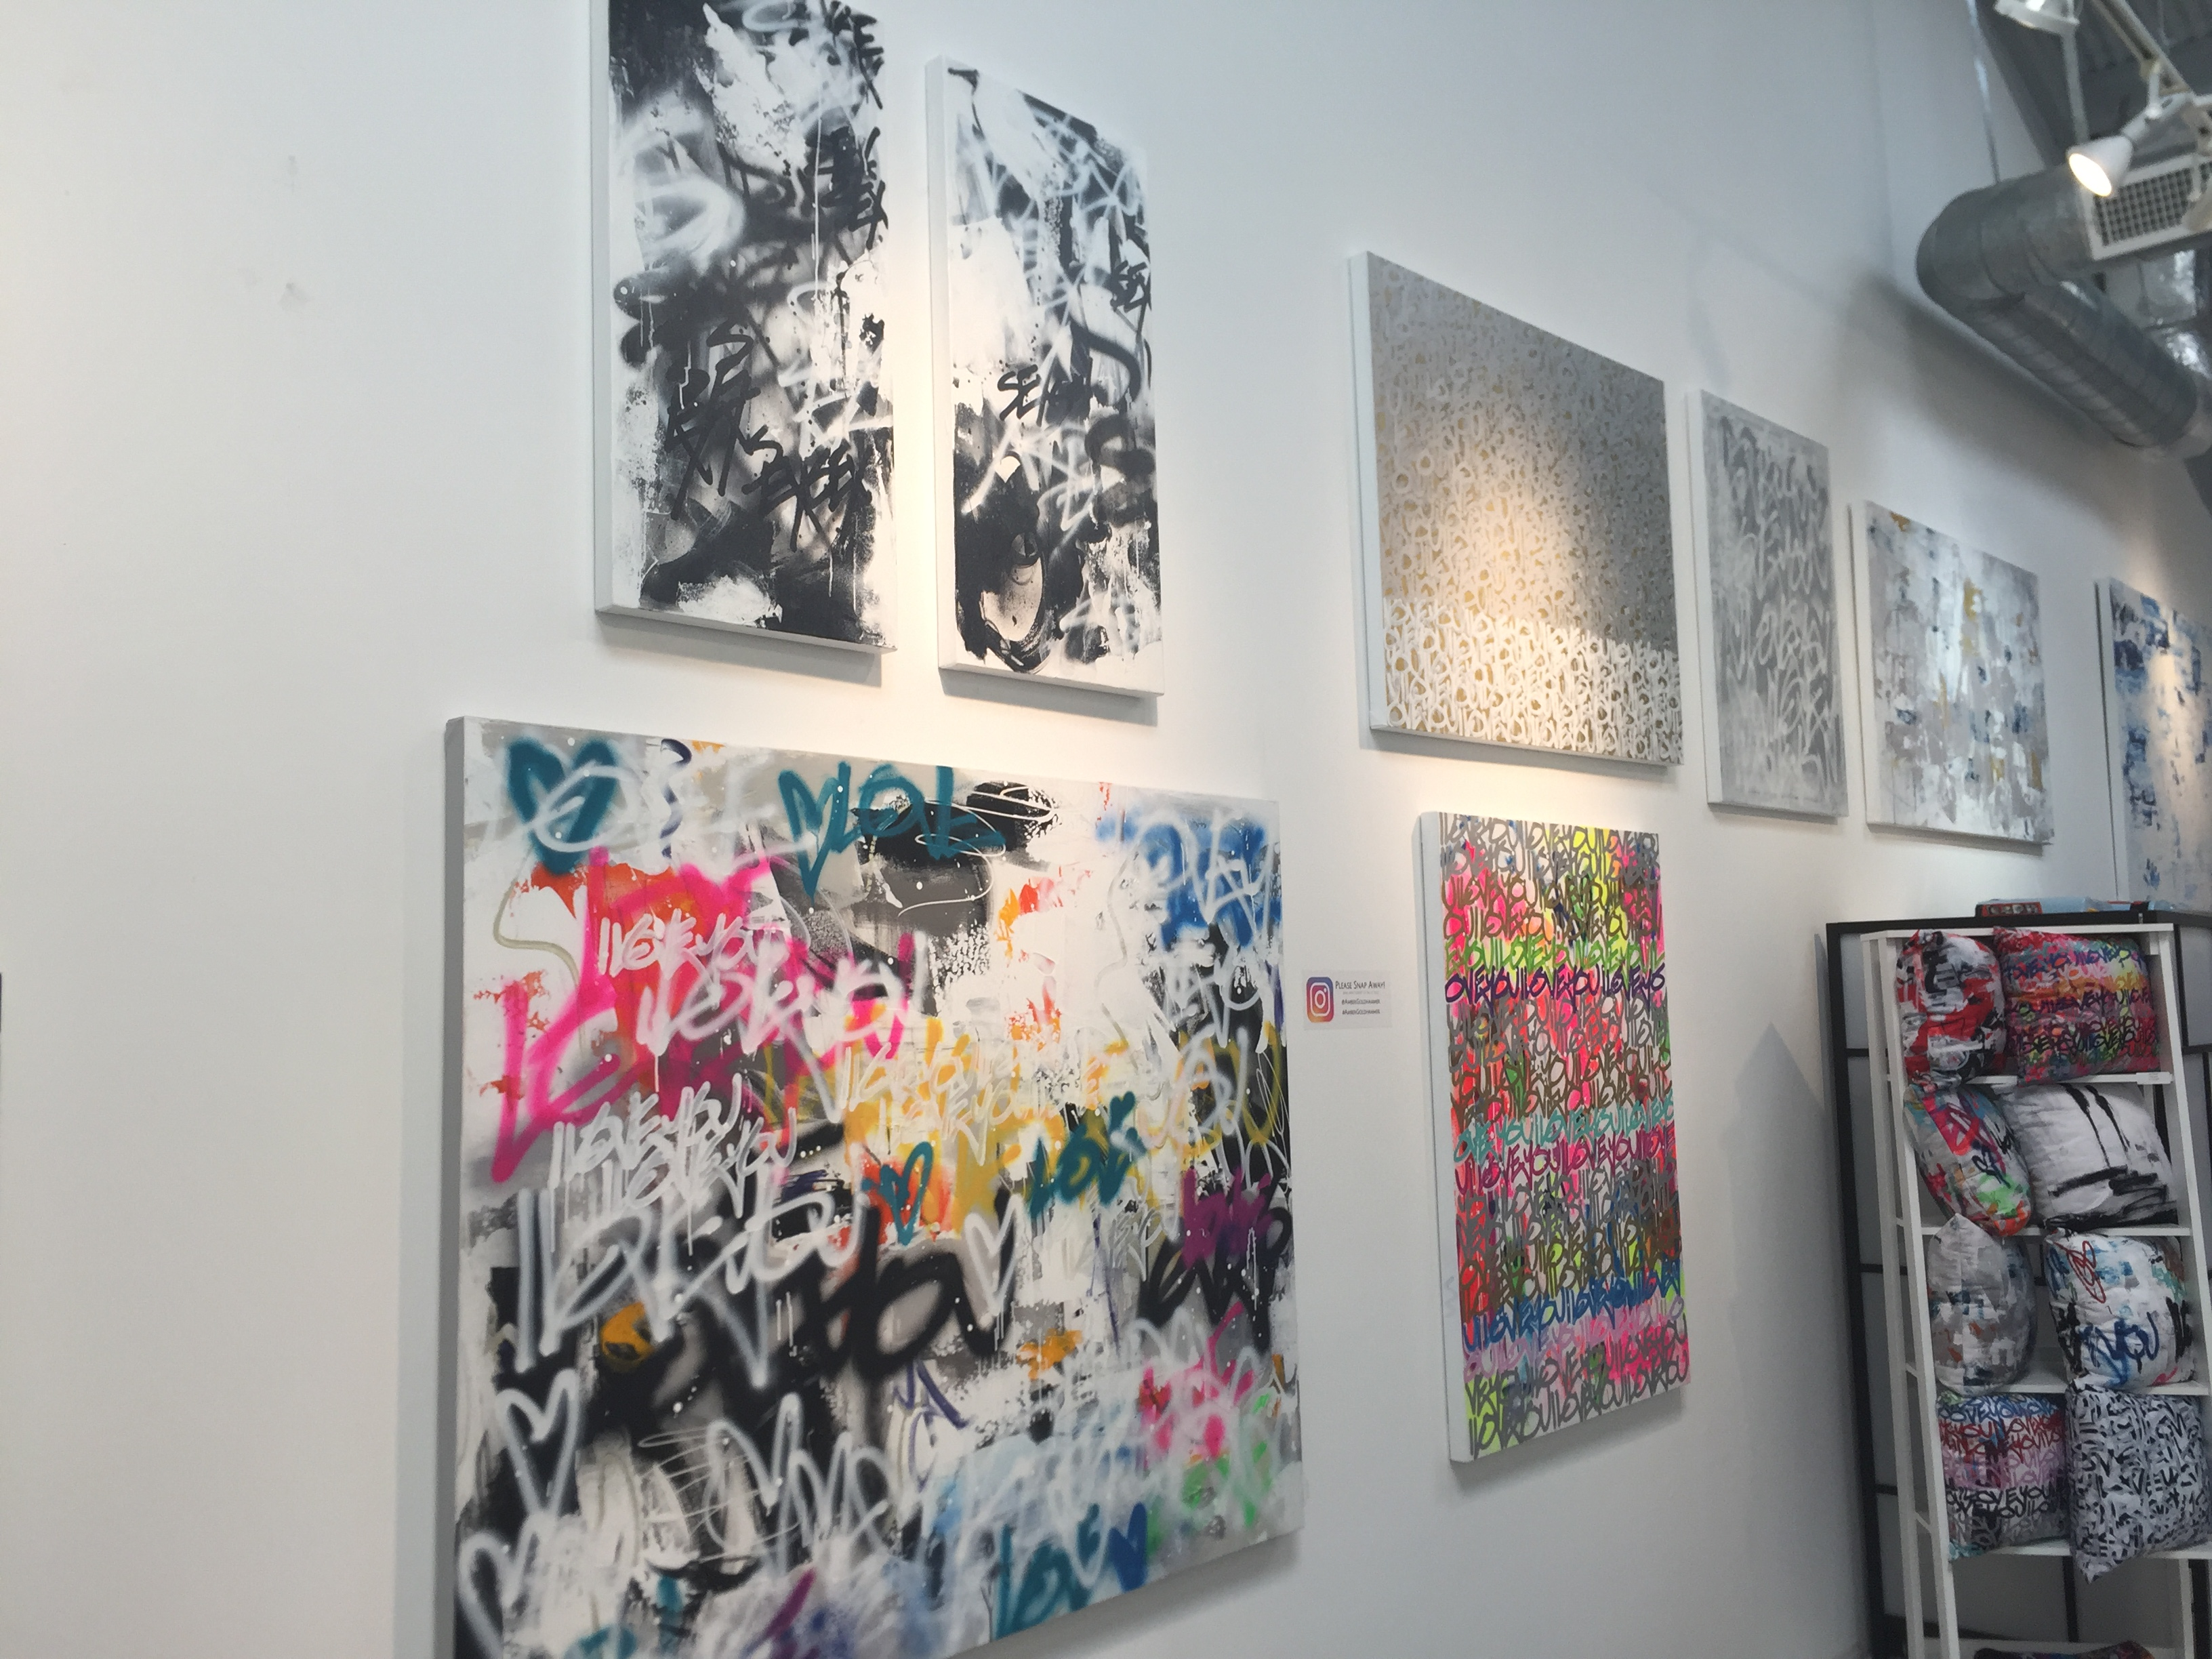 The wall of Amber Goldhammer's studio.